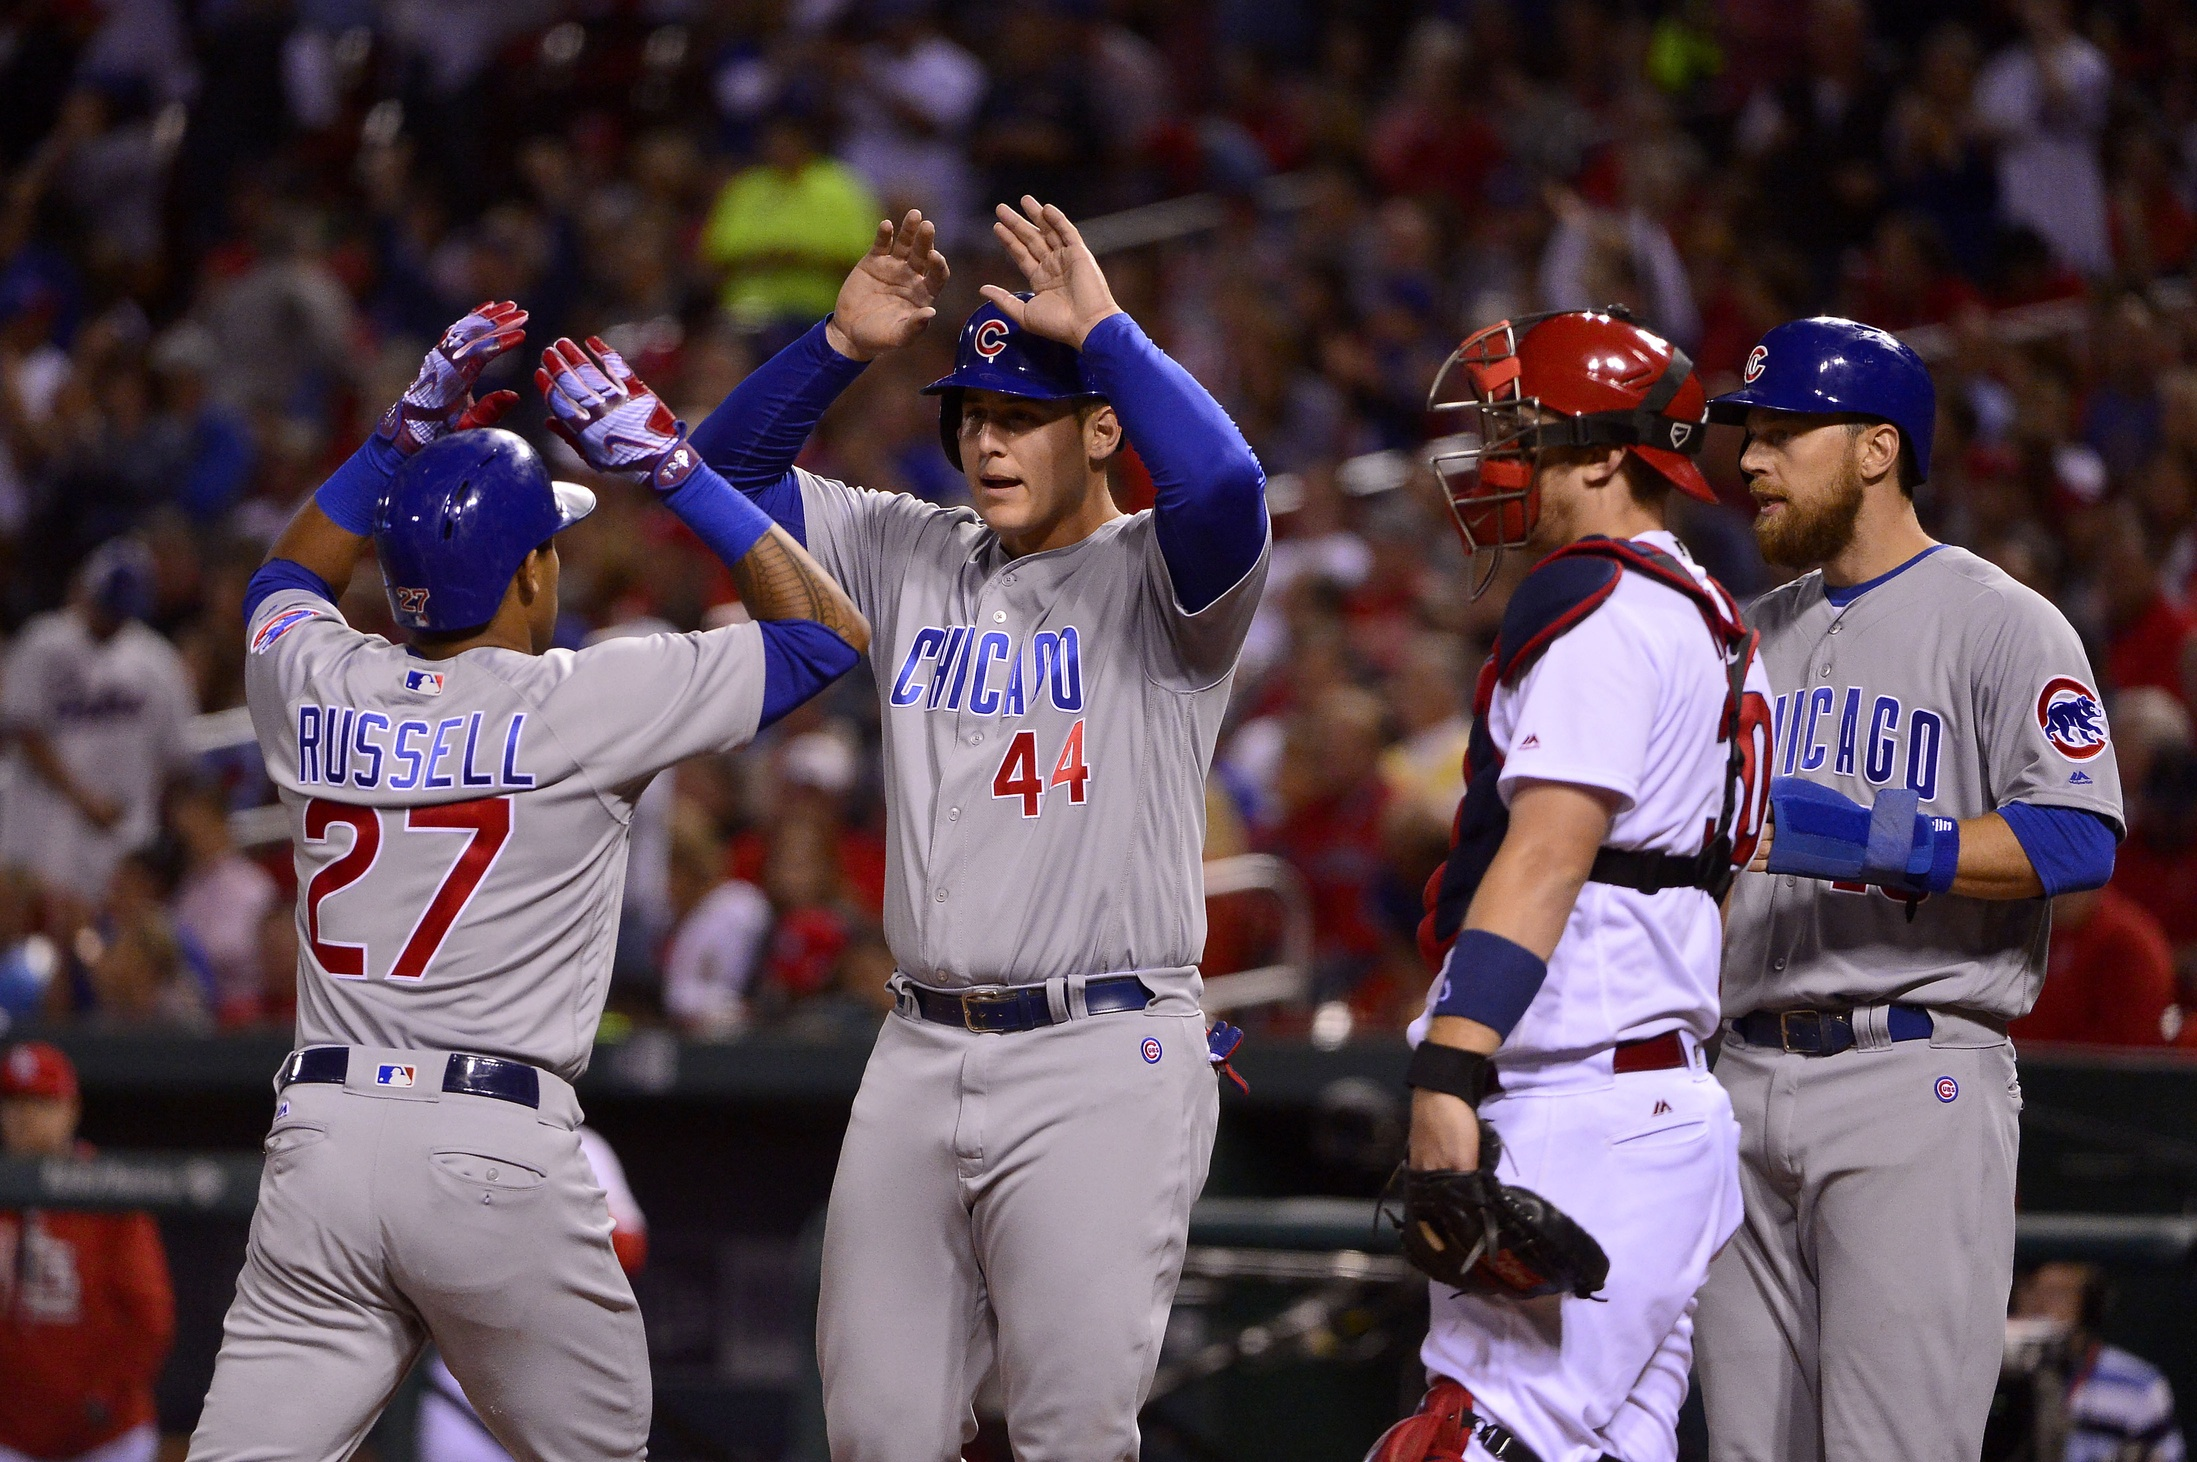 Chicago Cubs Clinch Central Division, Take NL Central Back-To-Back Years